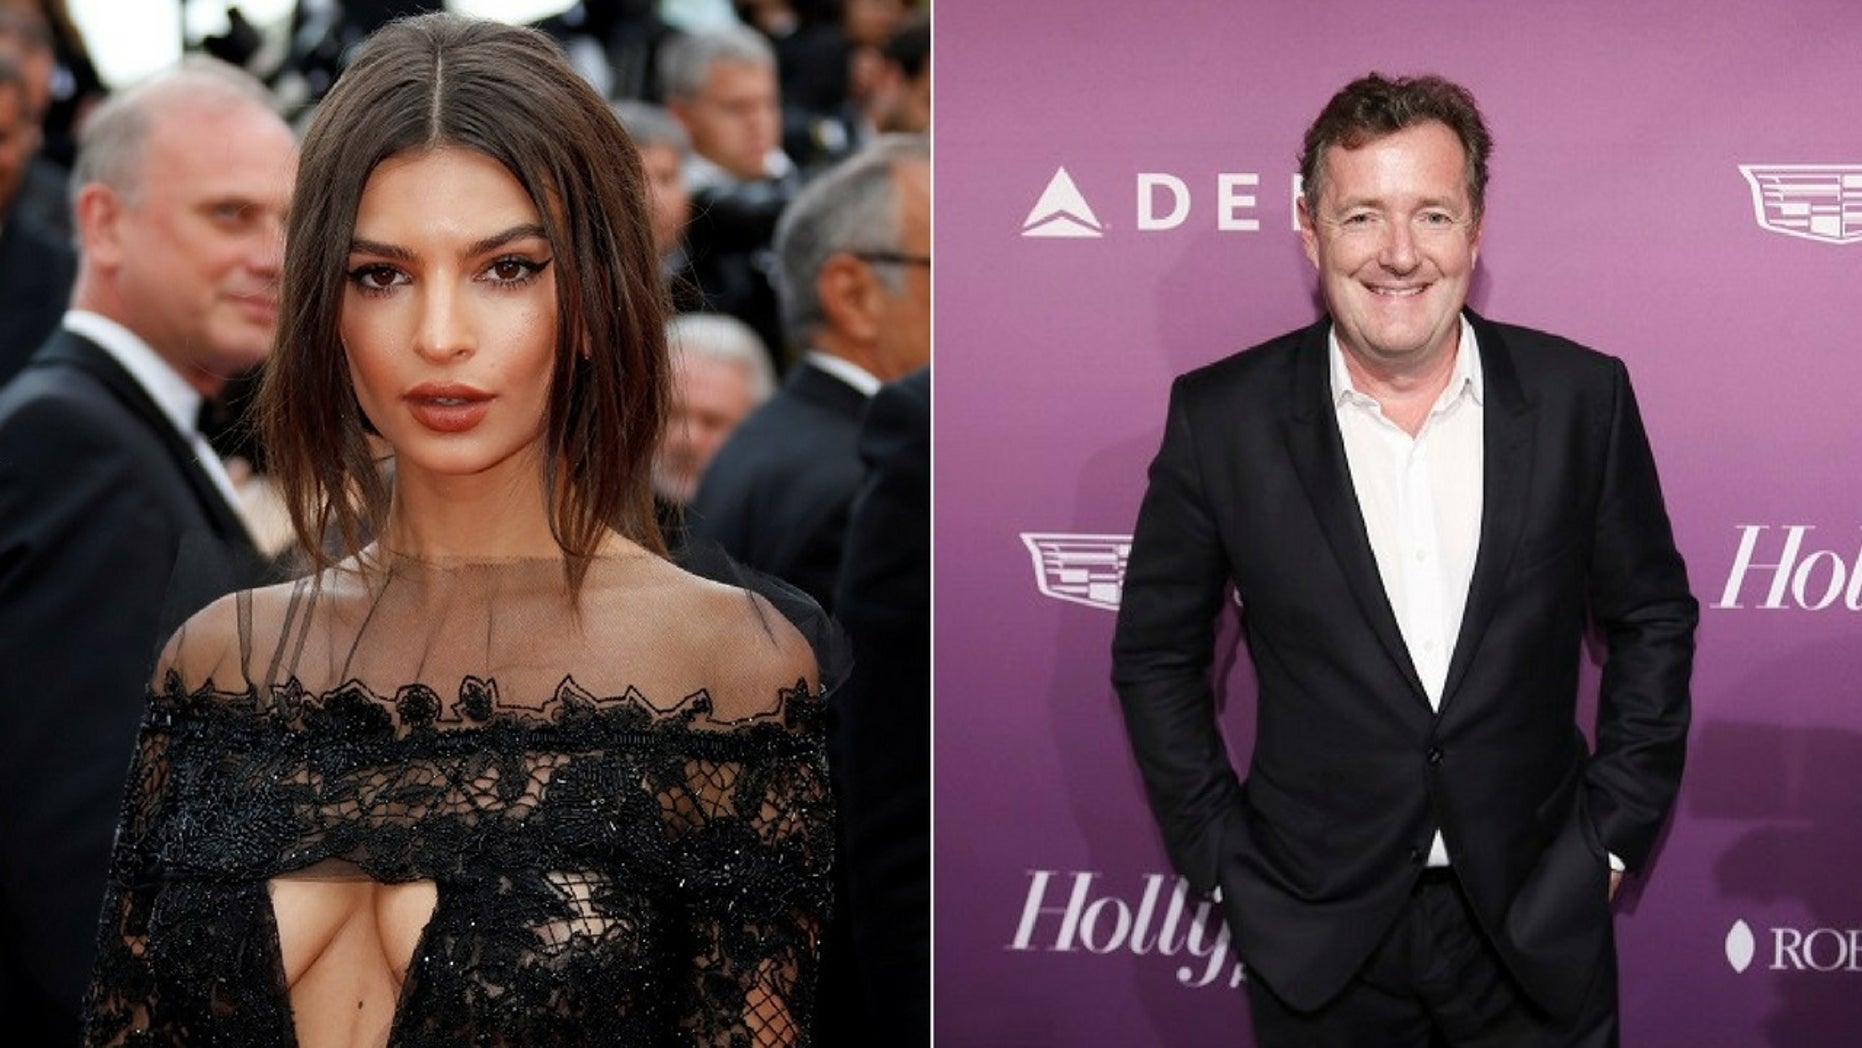 Emily Ratajkowski responded to Piers Morgan's criticism of her sexy lingerie video.